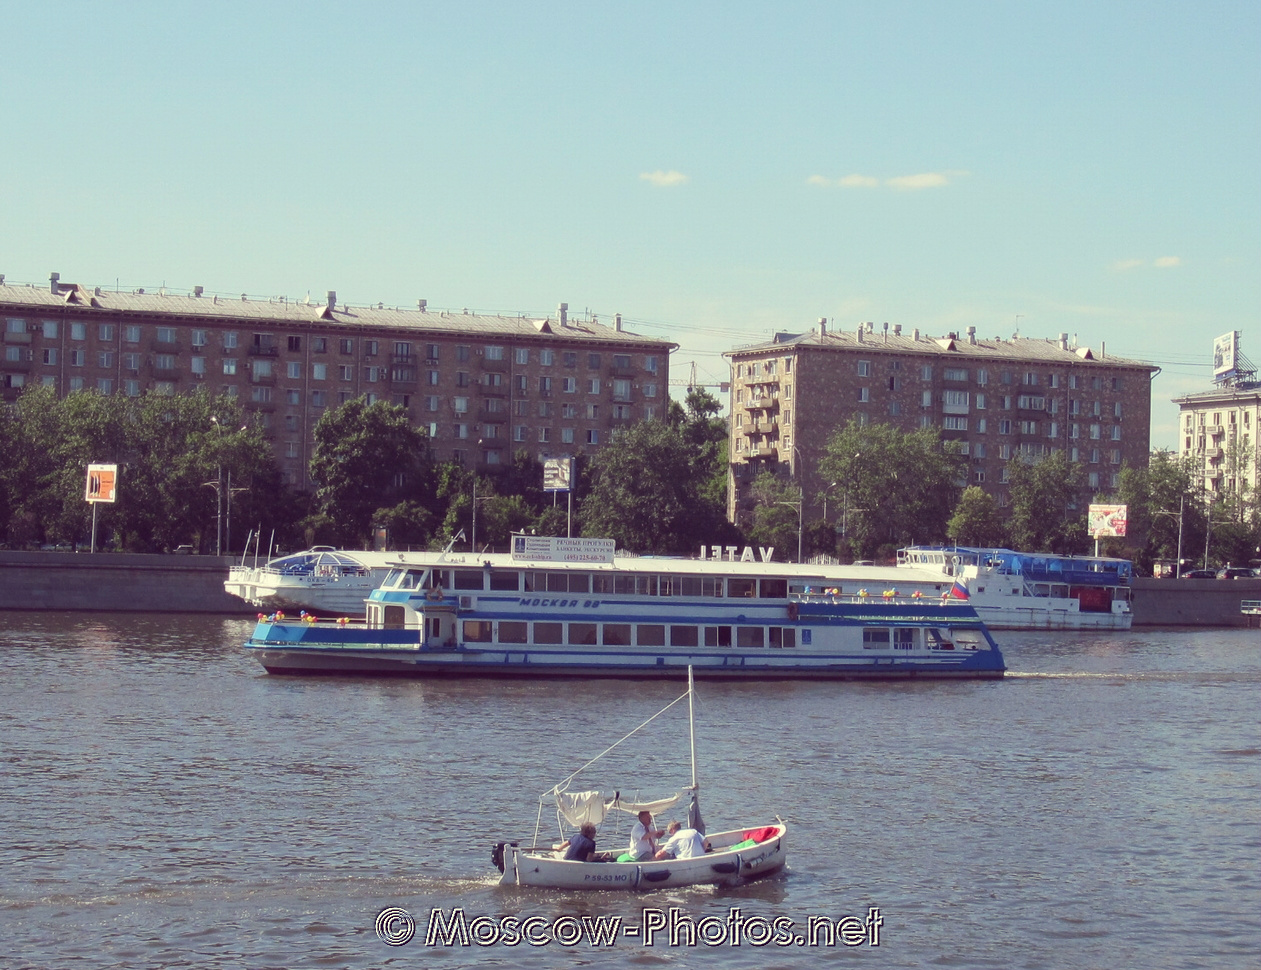 It's cool today on Moscow River